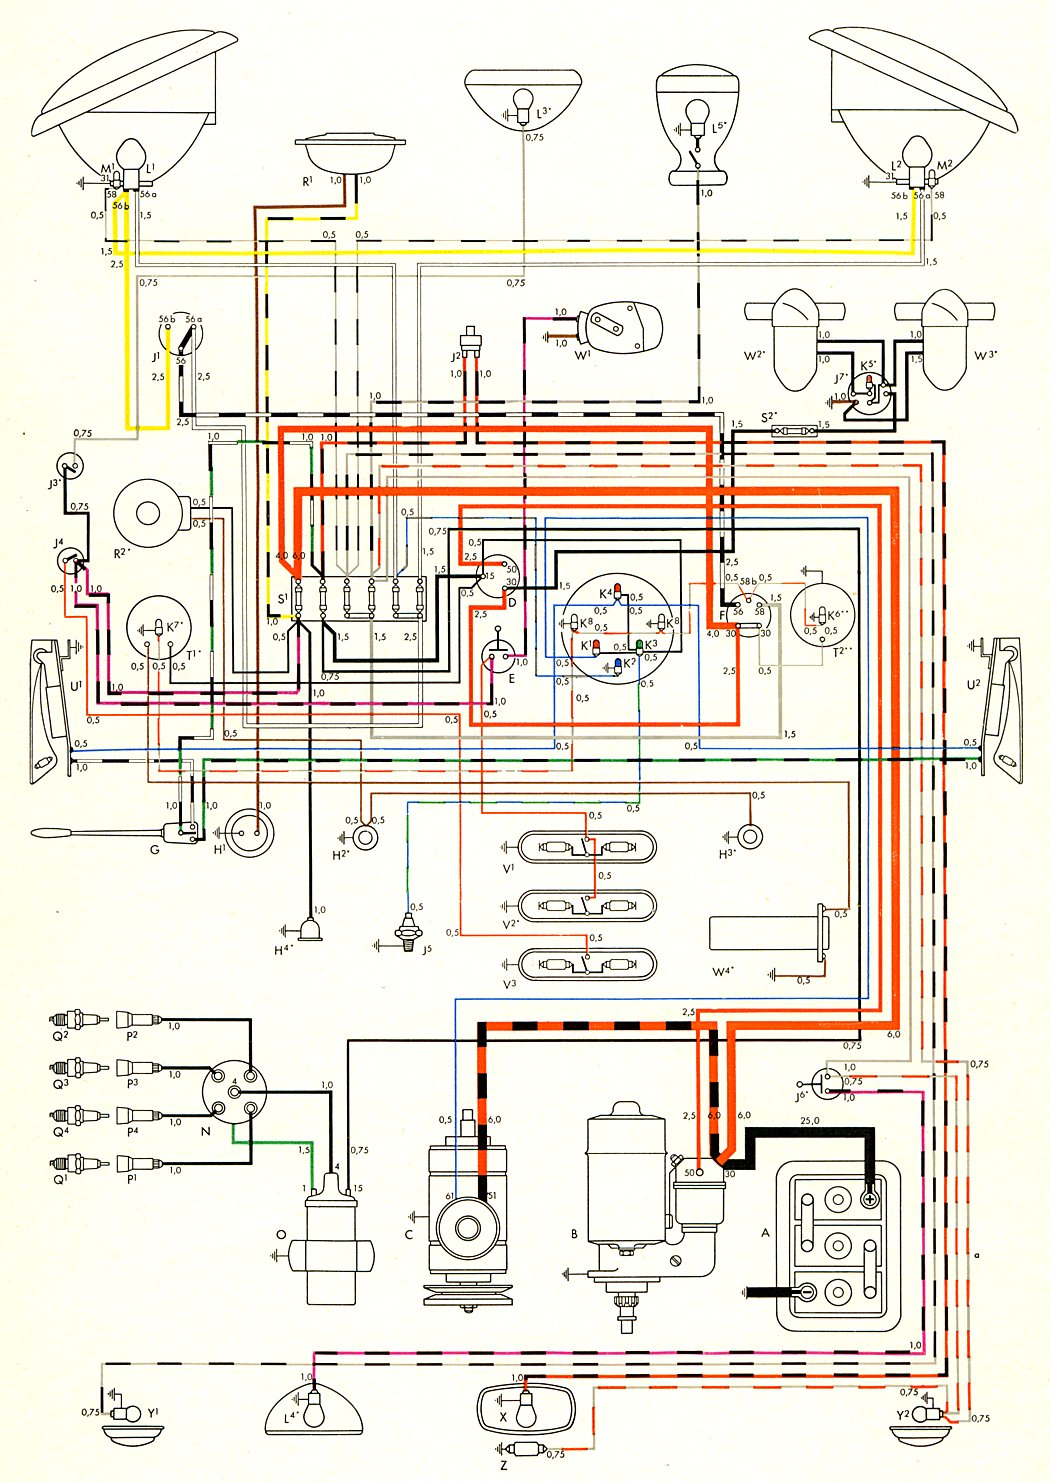 1970 chevy truck fuse box diagram with Freaks Winker Dauersignal Aus Blinklicht Erzeugen T12540 on 1970 Chevelle Horn Relay Wiring Diagram moreover Painless Wiring Diagram For 1980 Chevy Truck in addition Tata besides Installing Of Honeywell Wi Fi Programmable Thermostat likewise 1970 Vw Turn Signal Wiring Diagram.